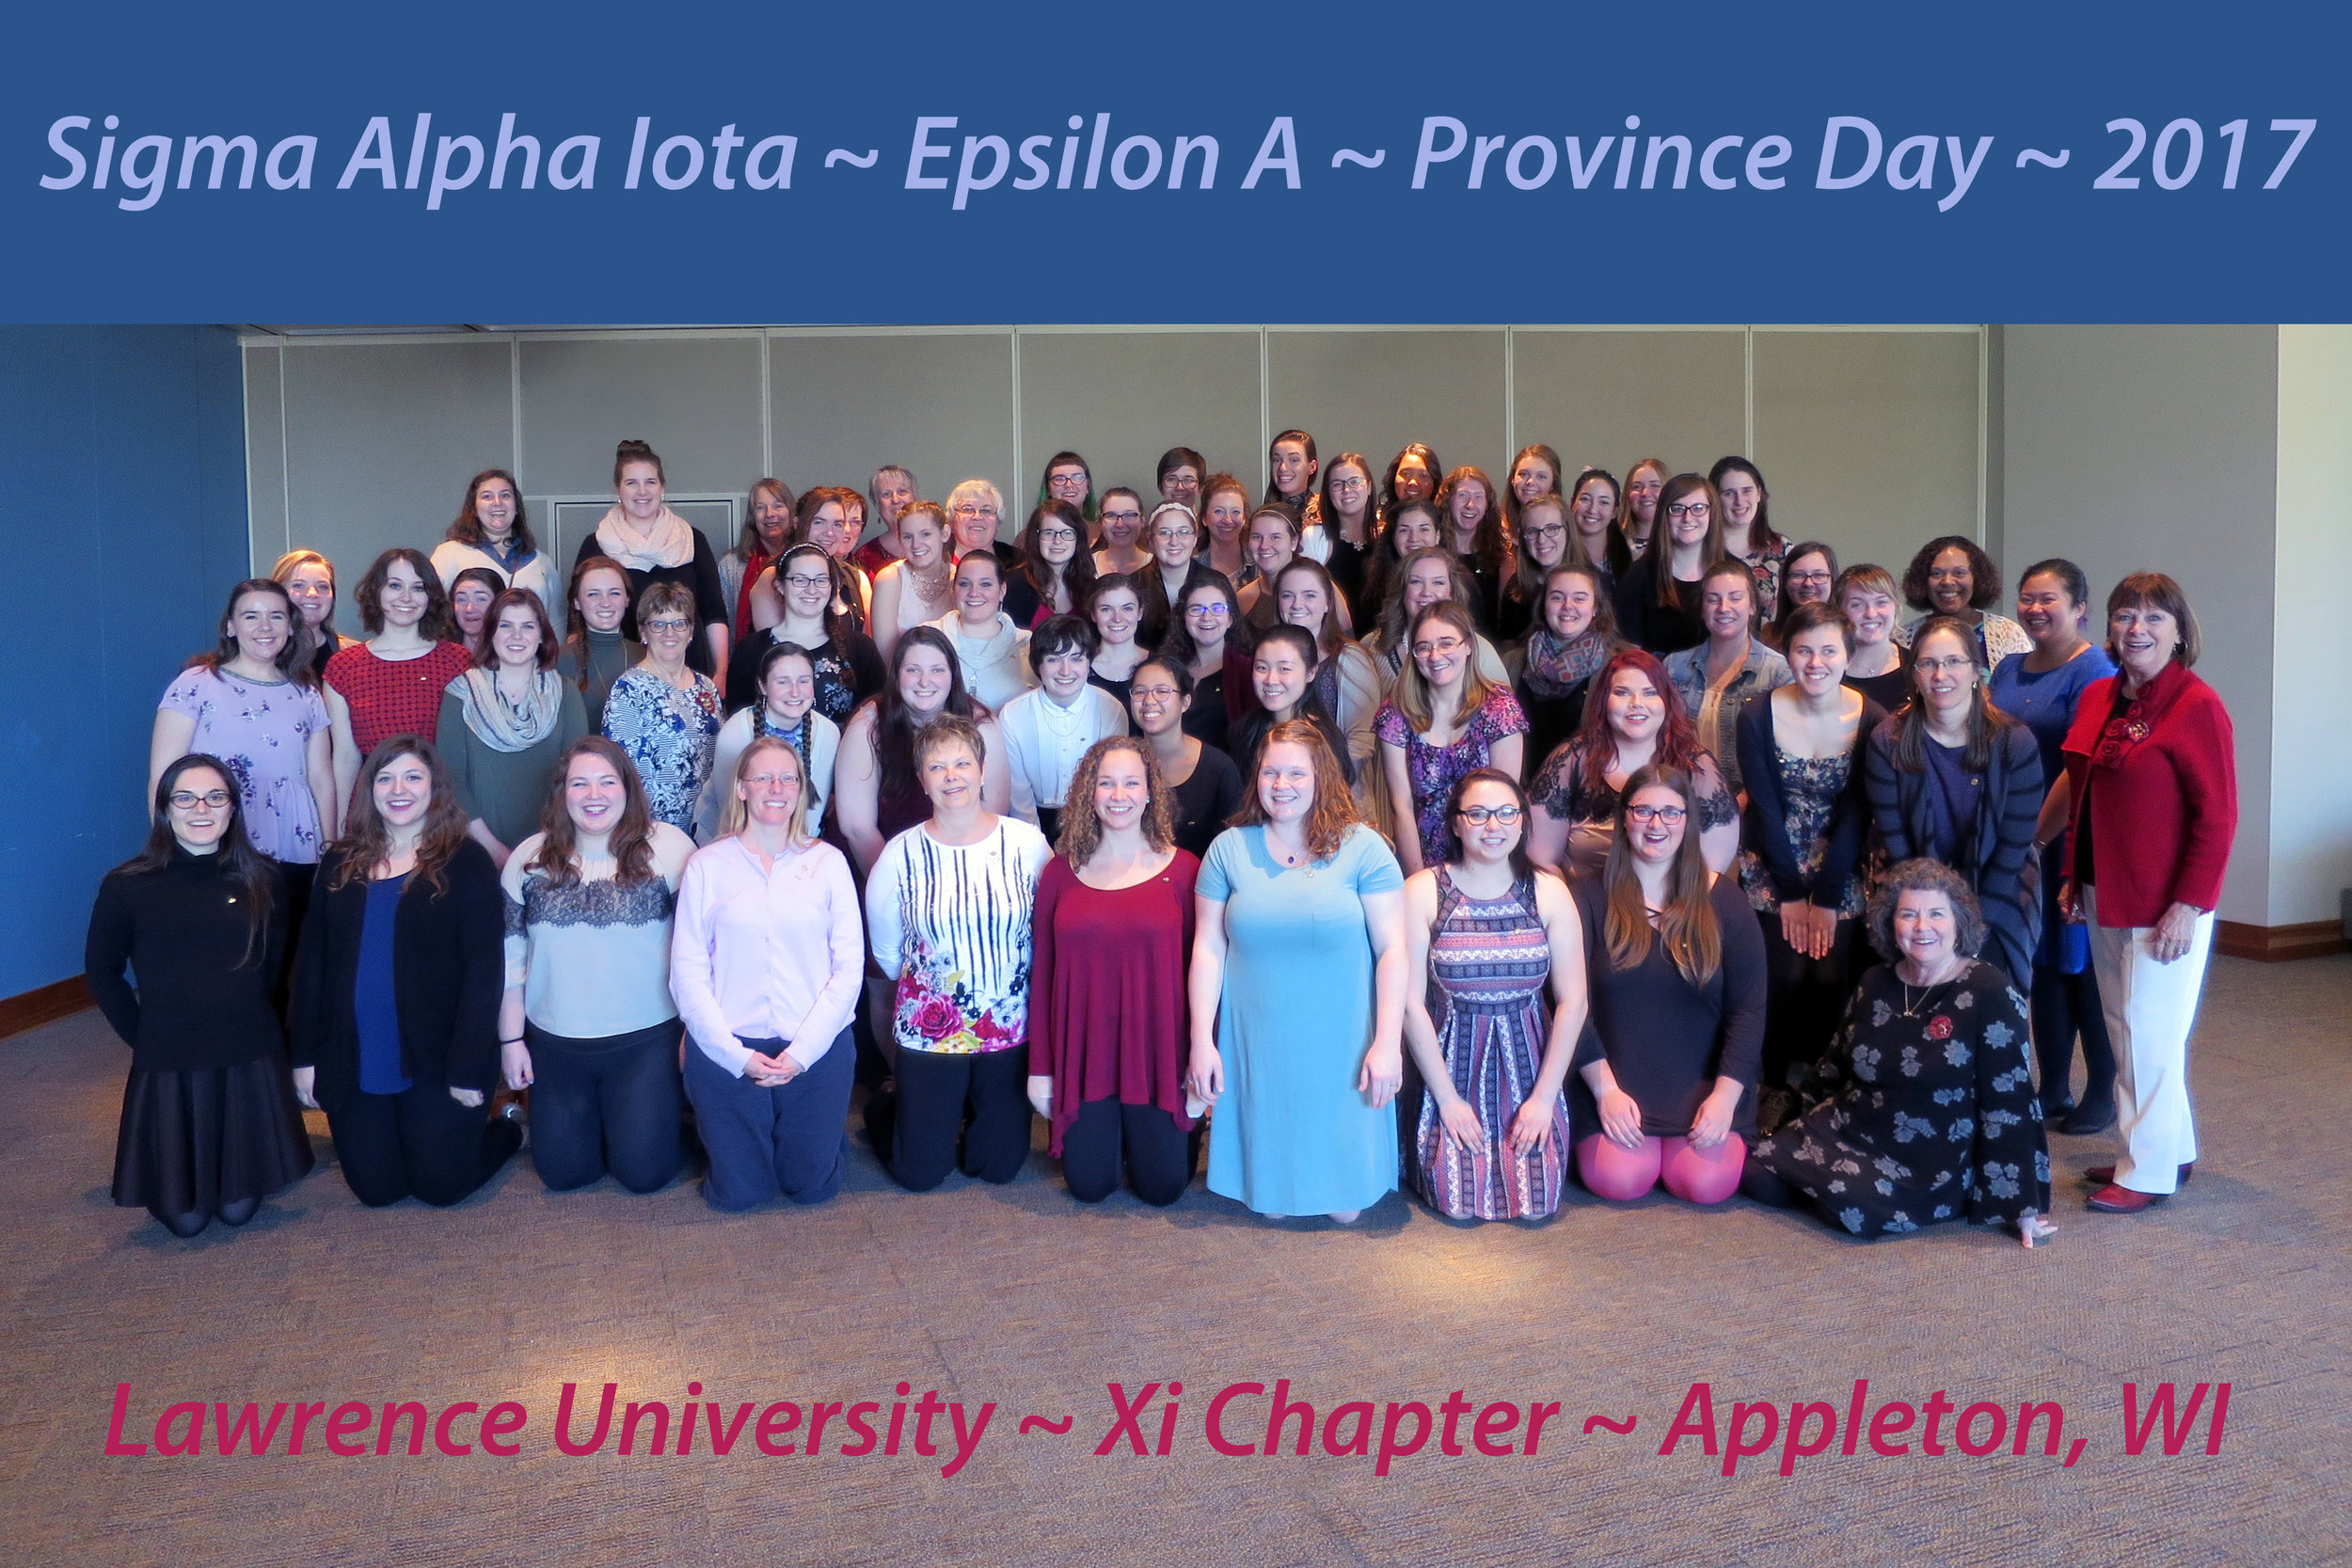 Epsilon A Province Day, 2017 - Hosted by Xi Chapter